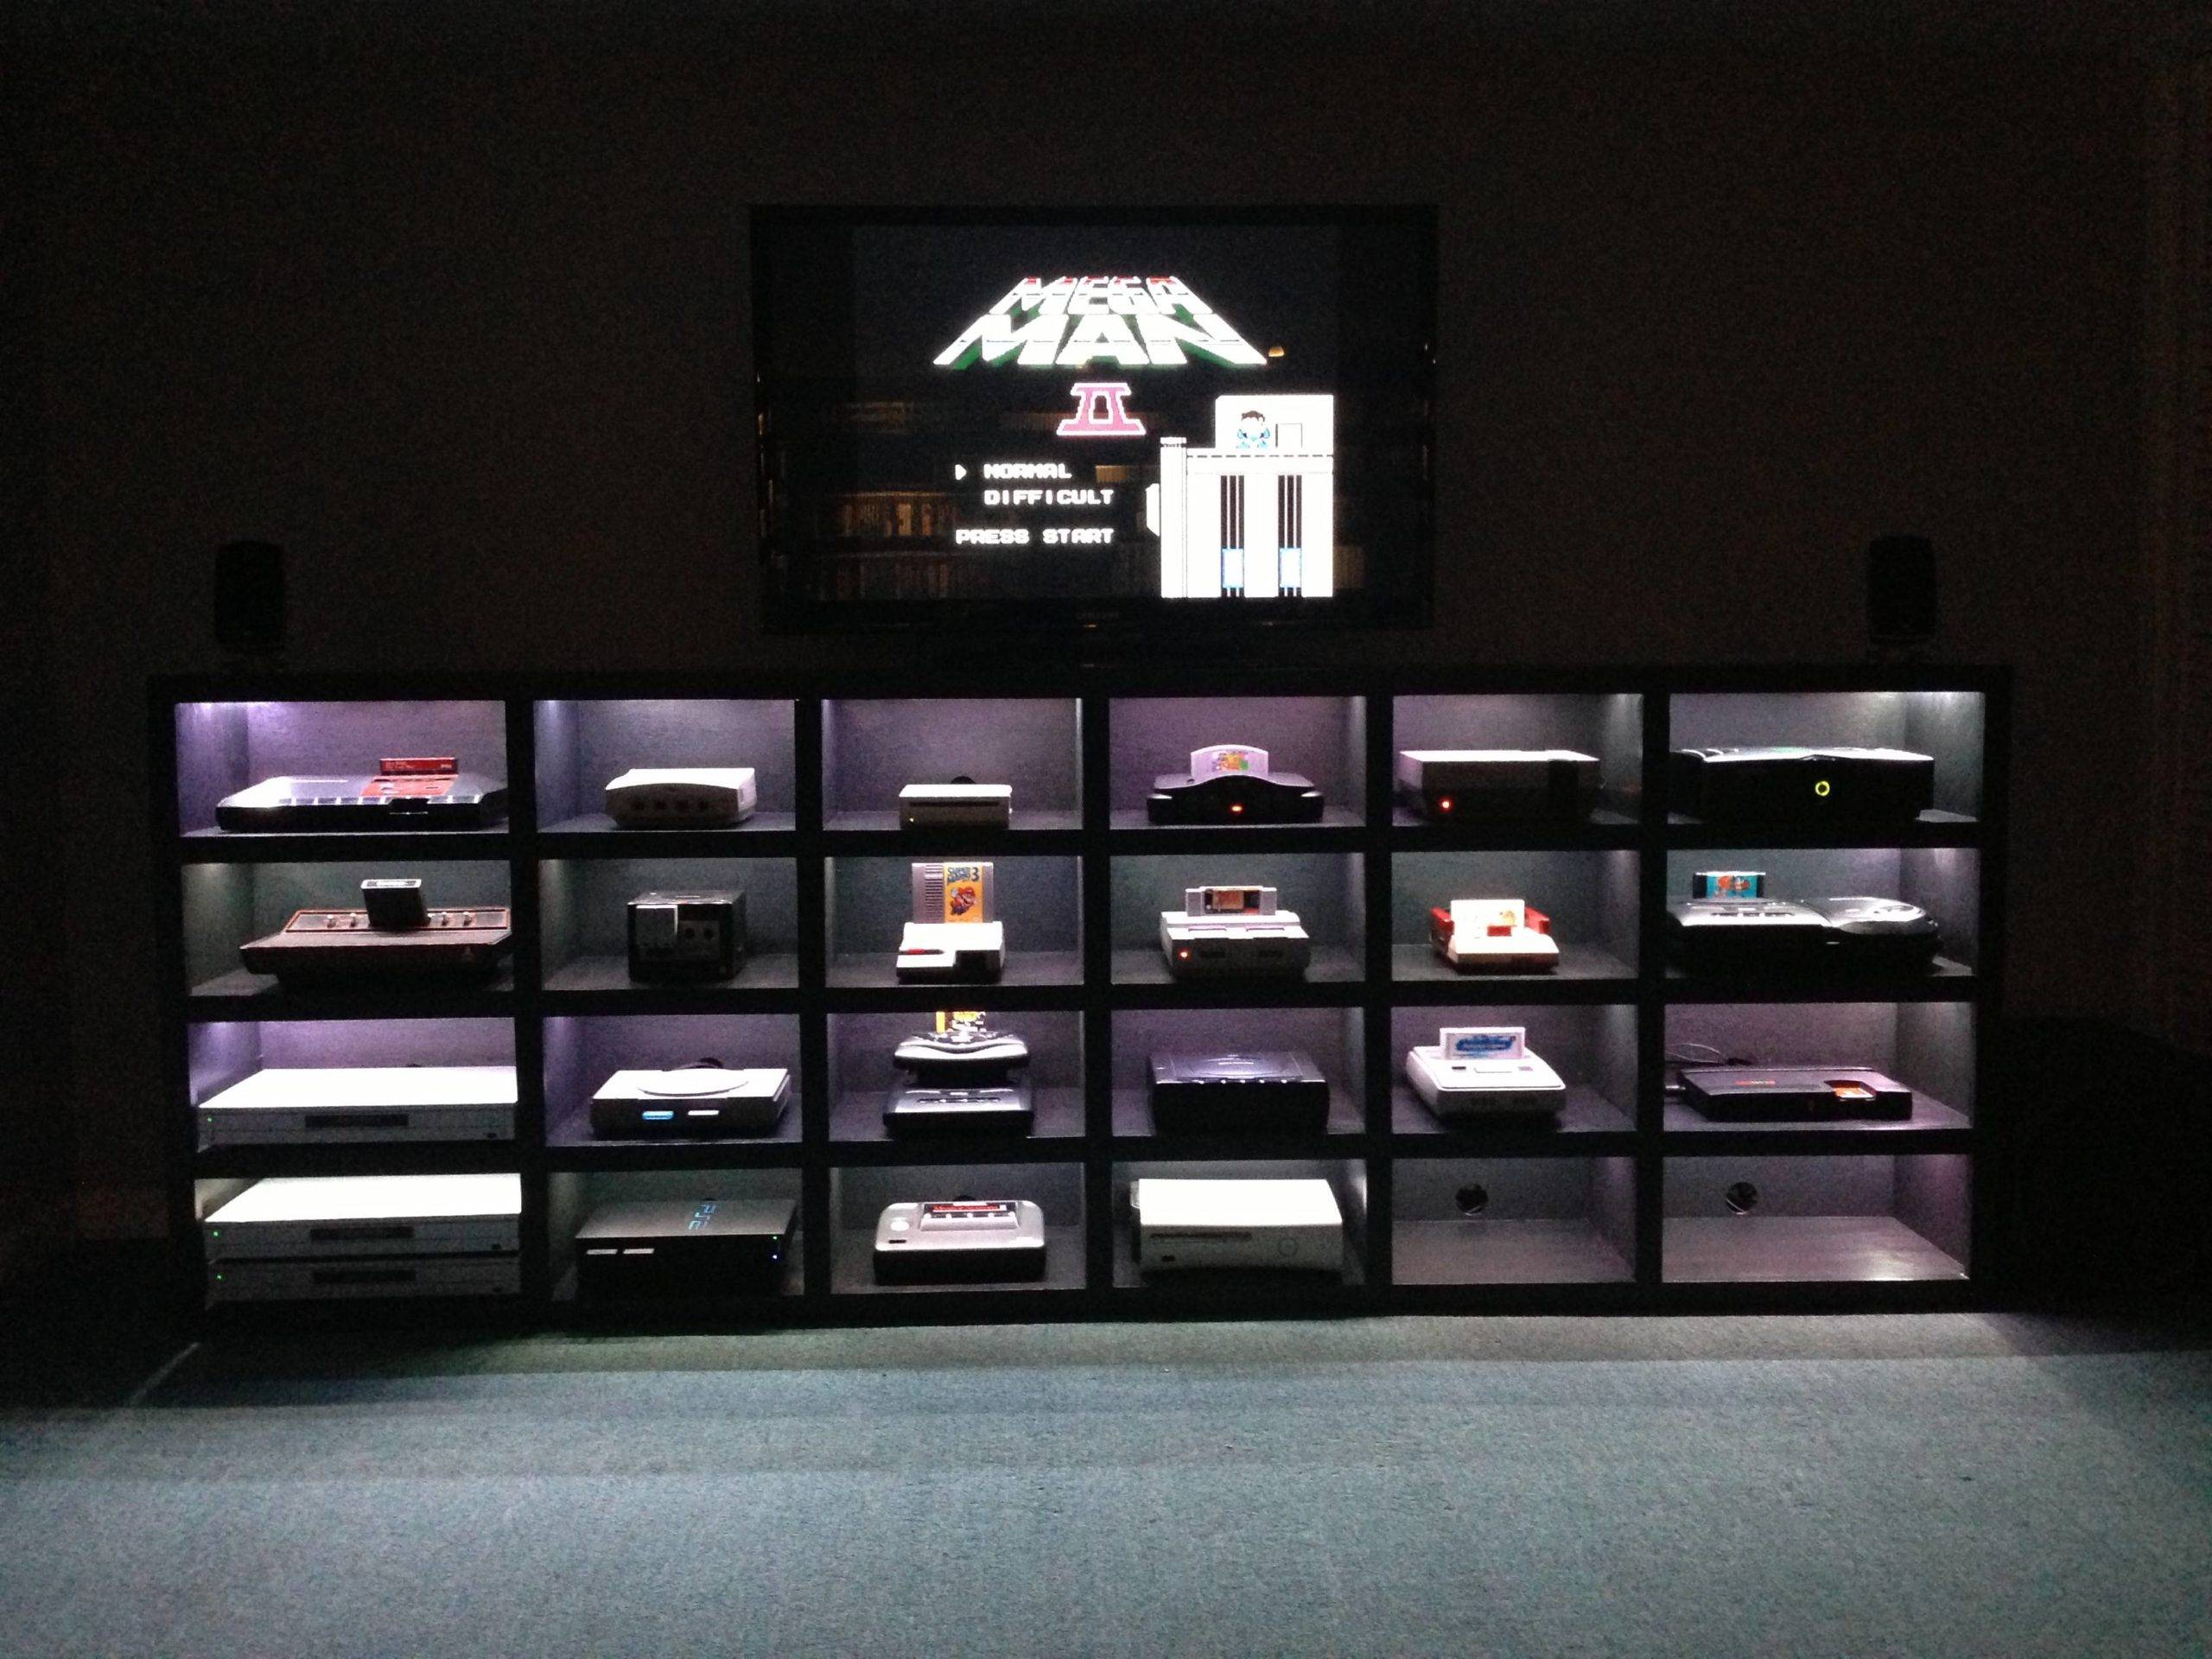 rows of video game consoles on display